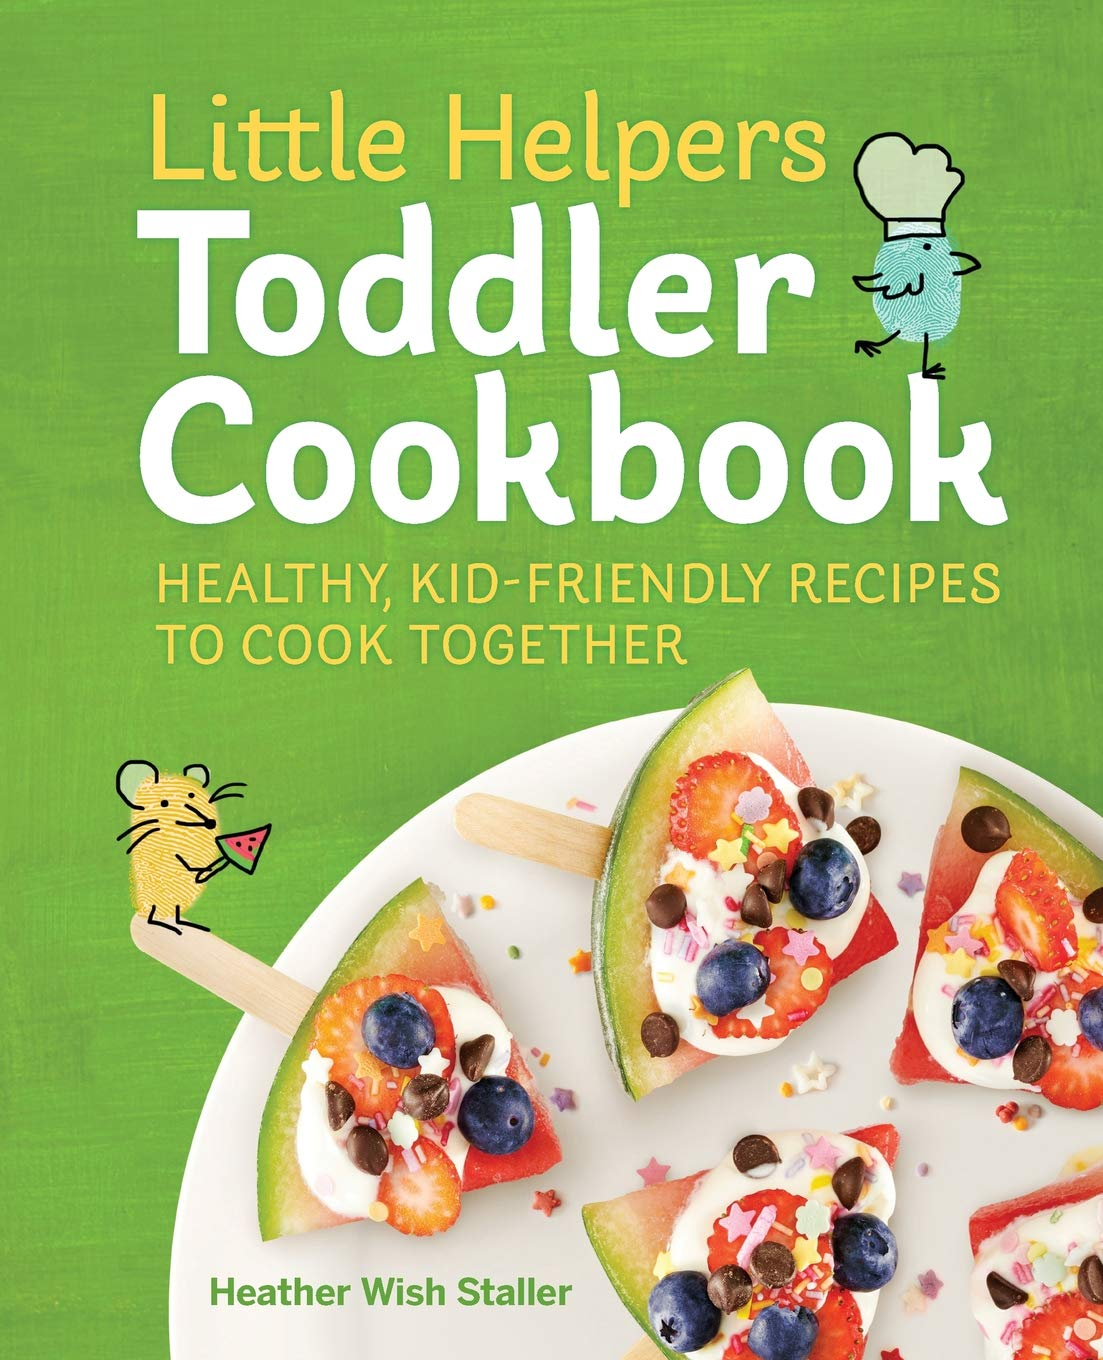 Little Helpers Toddler Cookbook Kid Friendly product image